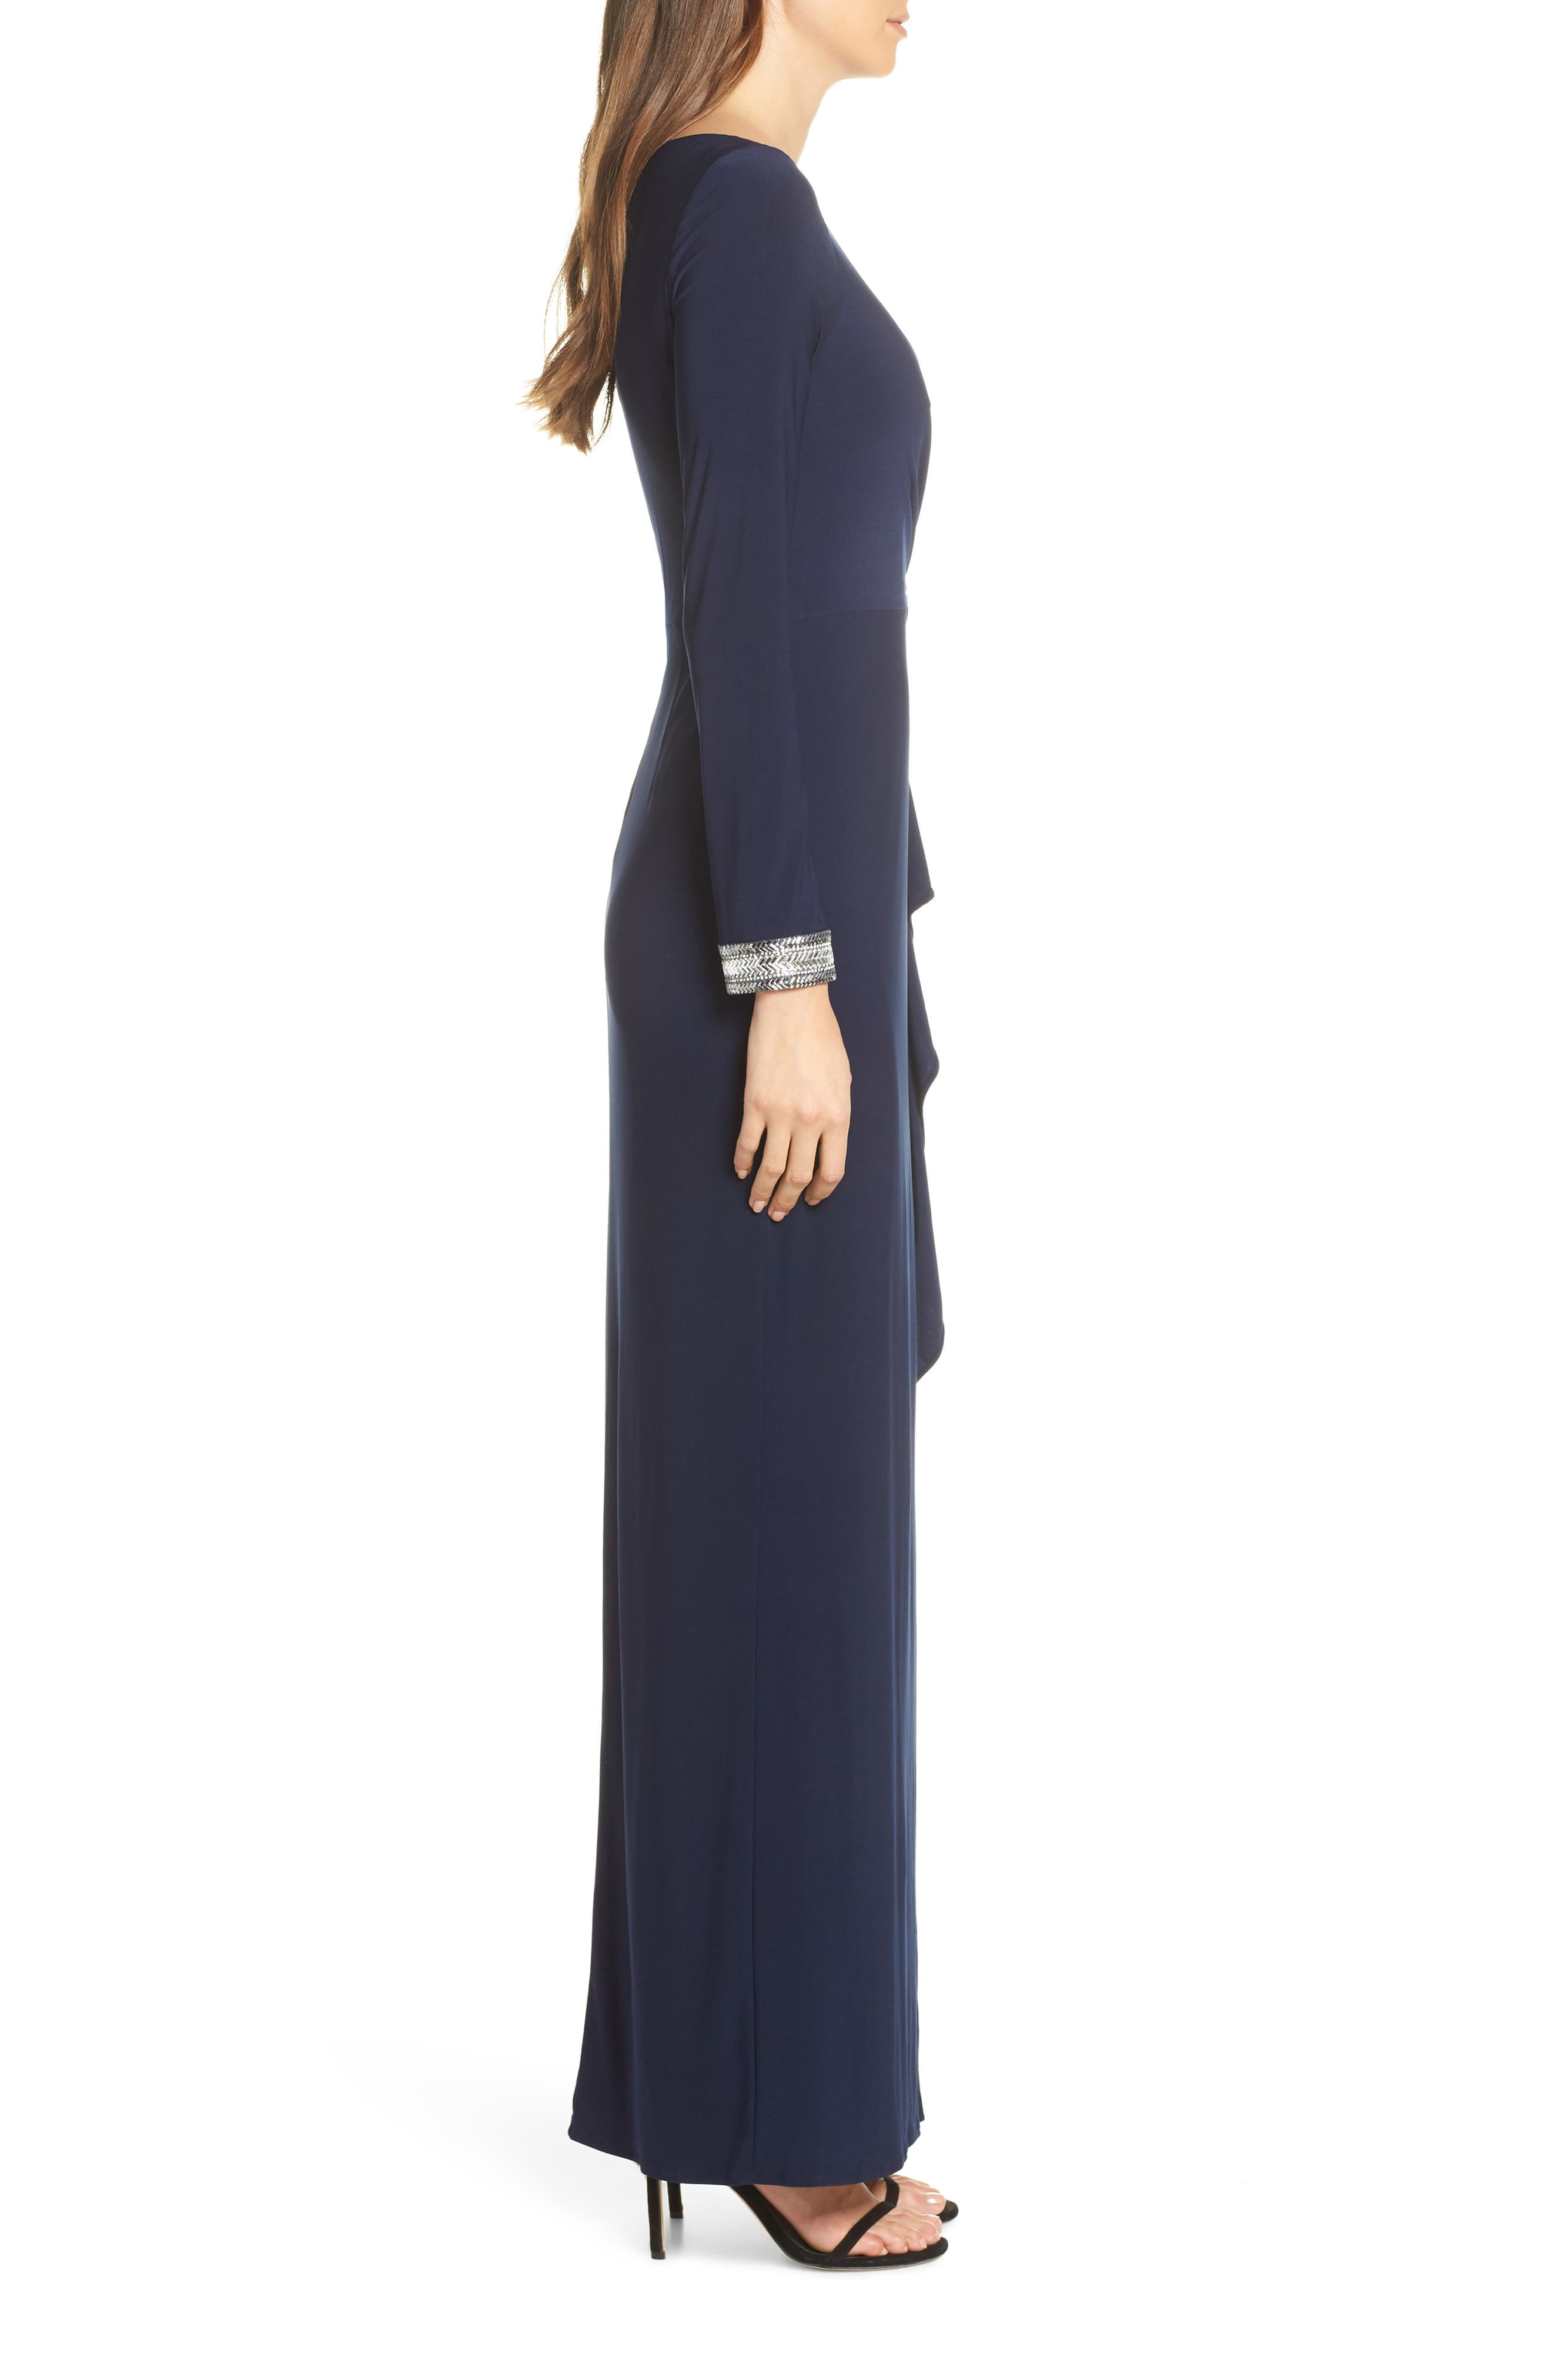 VINCE CAMUTO, Beaded Cuff Ruched Jersey Dress, Alternate thumbnail 4, color, NAVY